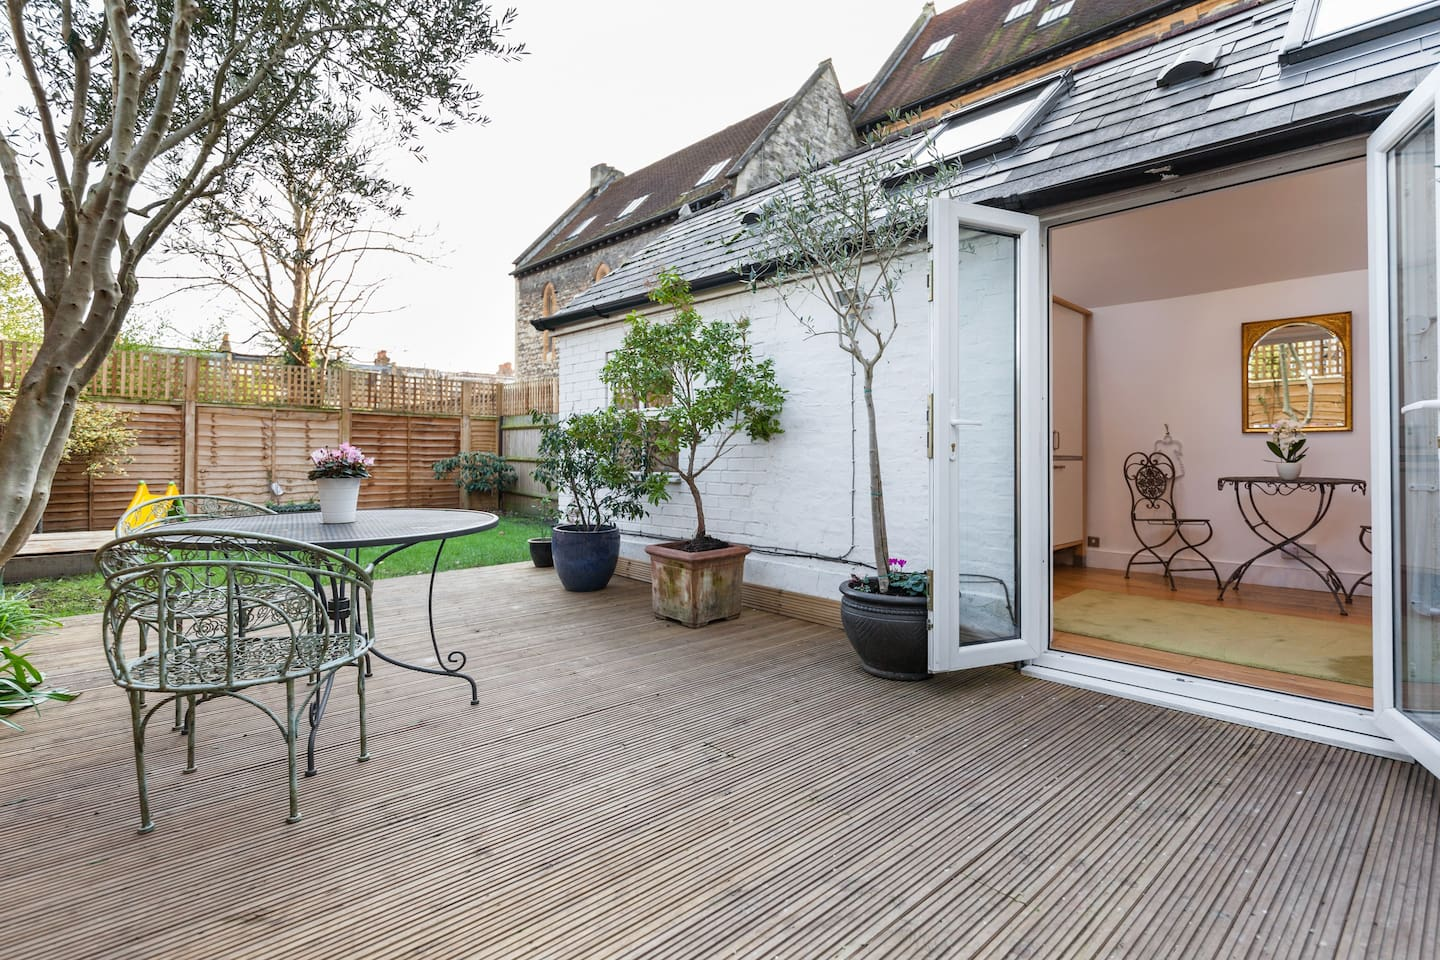 Access to studio is via garden and newly finished decking.